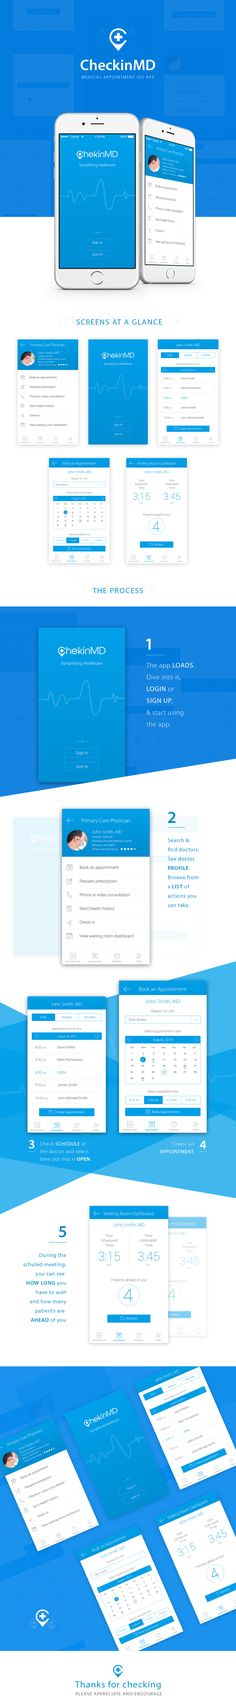 This was a redesign proposal for CheckInMD, a healthcare appointment app where patients can book appointments and contact doctors for their healthcare related problems.